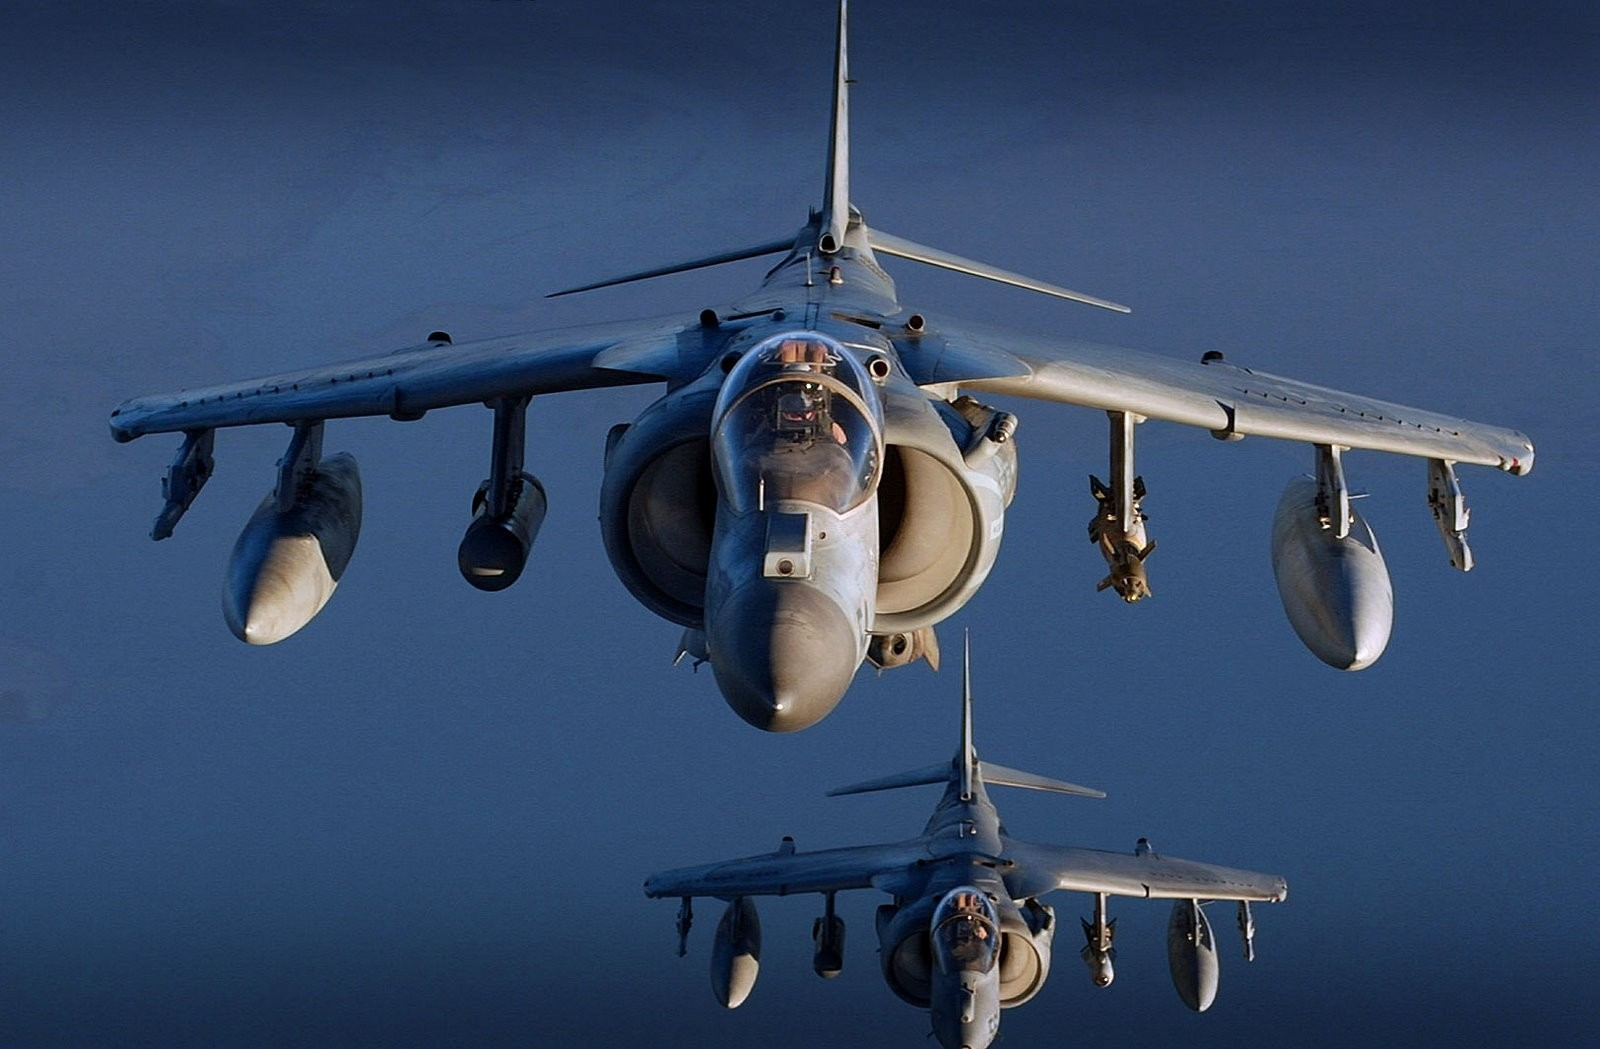 Aircraft military warfare harrier